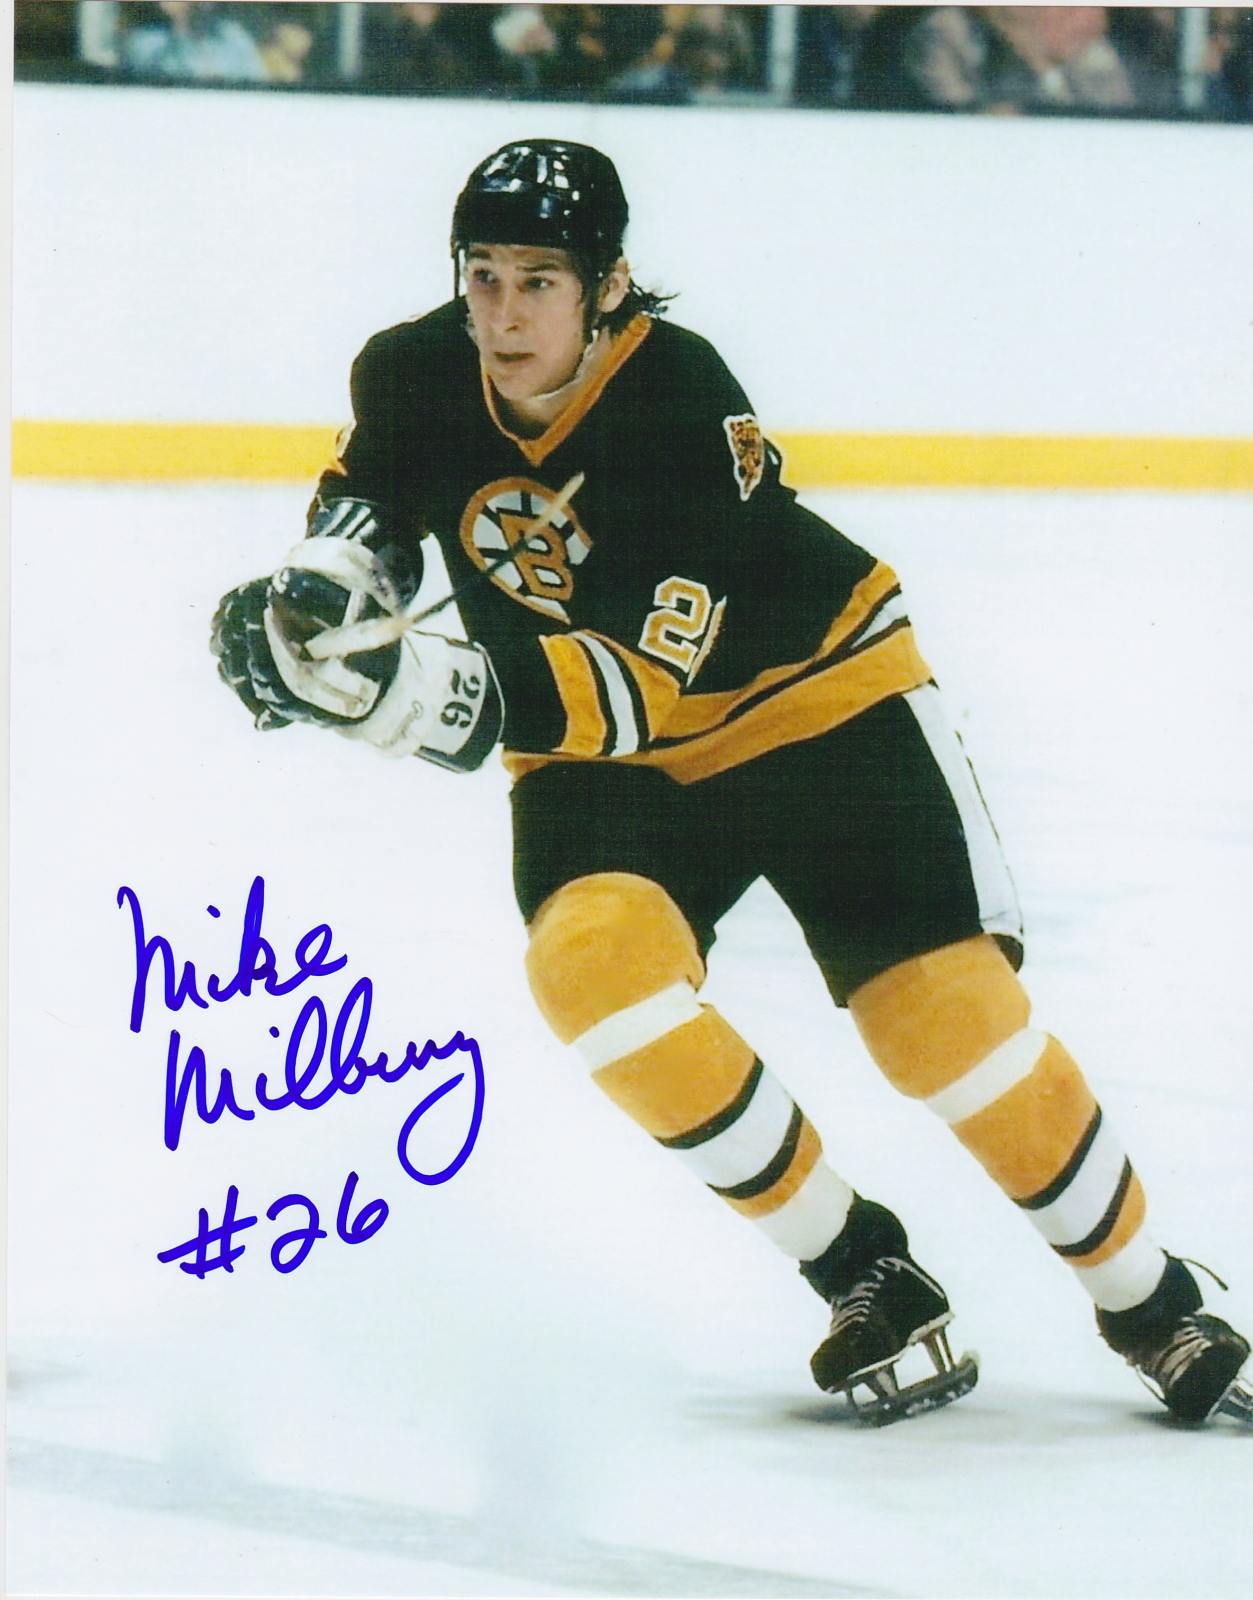 Mike Milbury Autograph 8x10 Color photo Boston Bruins